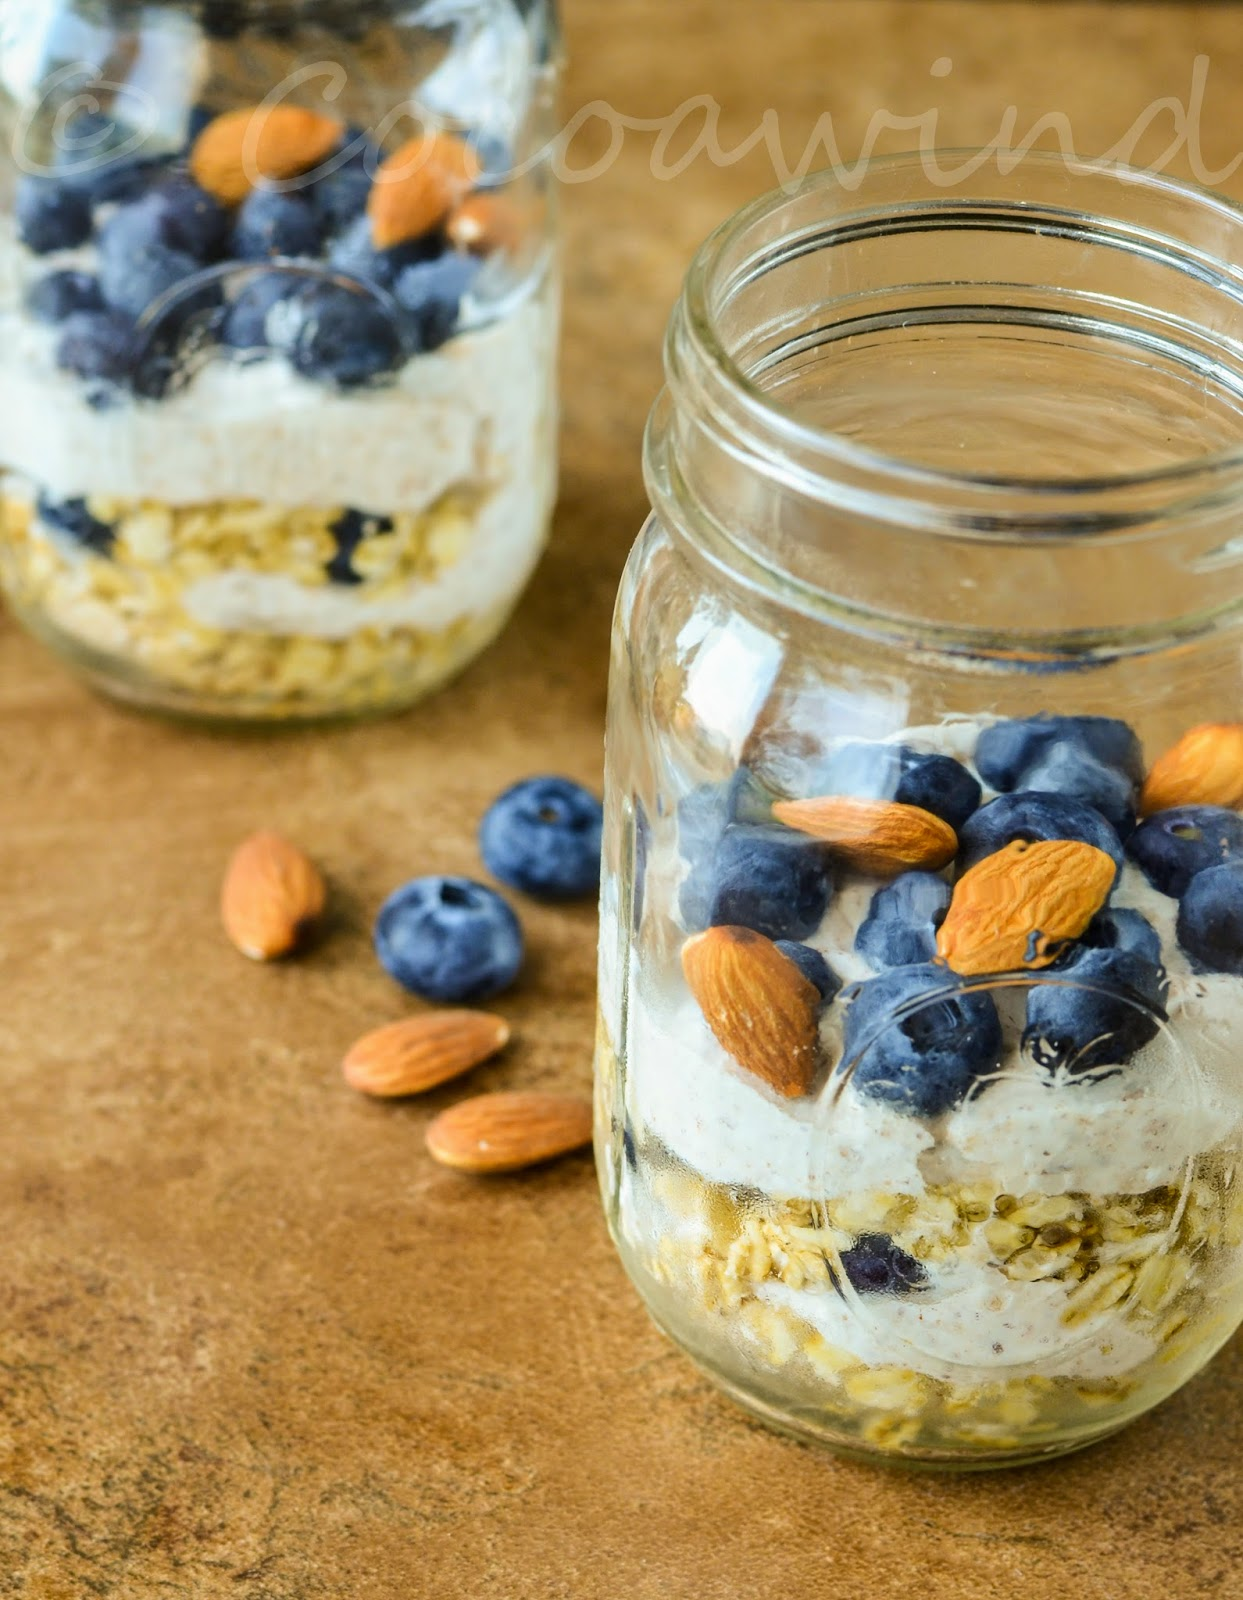 Overnight Oats: Blueberry, Cinnamon and Almond Butter